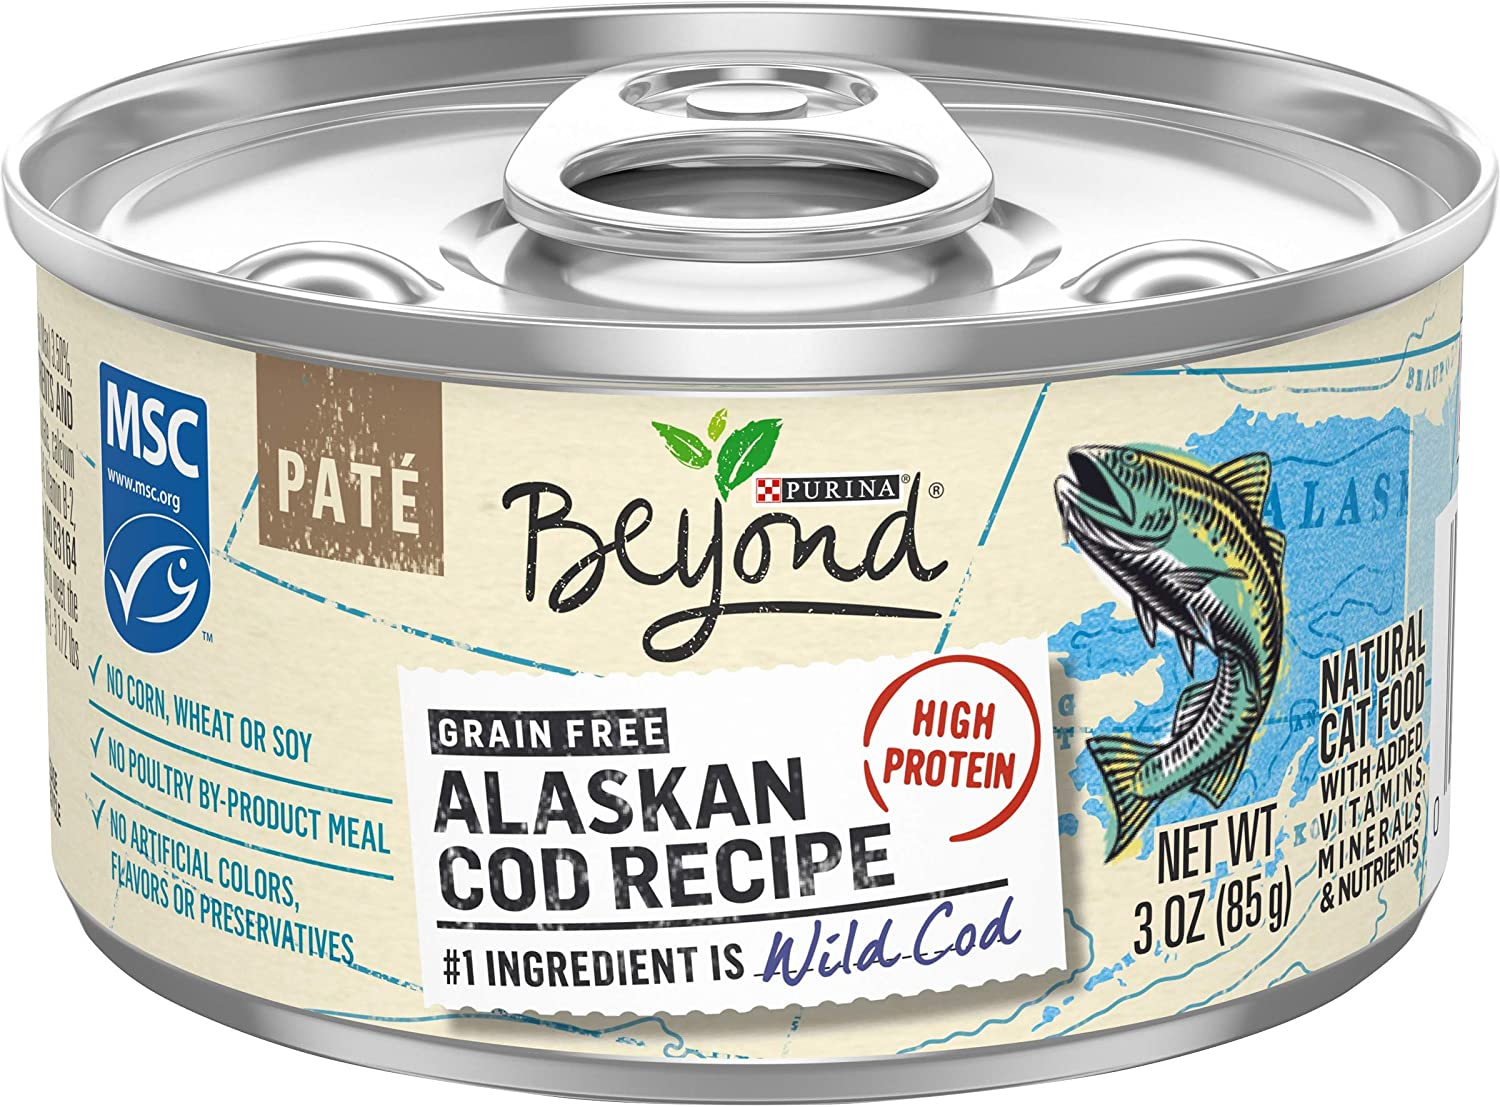 Purina Beyond Grain Free, Natural, High Protein Pate Wet Cat Food, Alaskan Cod Recipe - (12) 3 oz. Cans